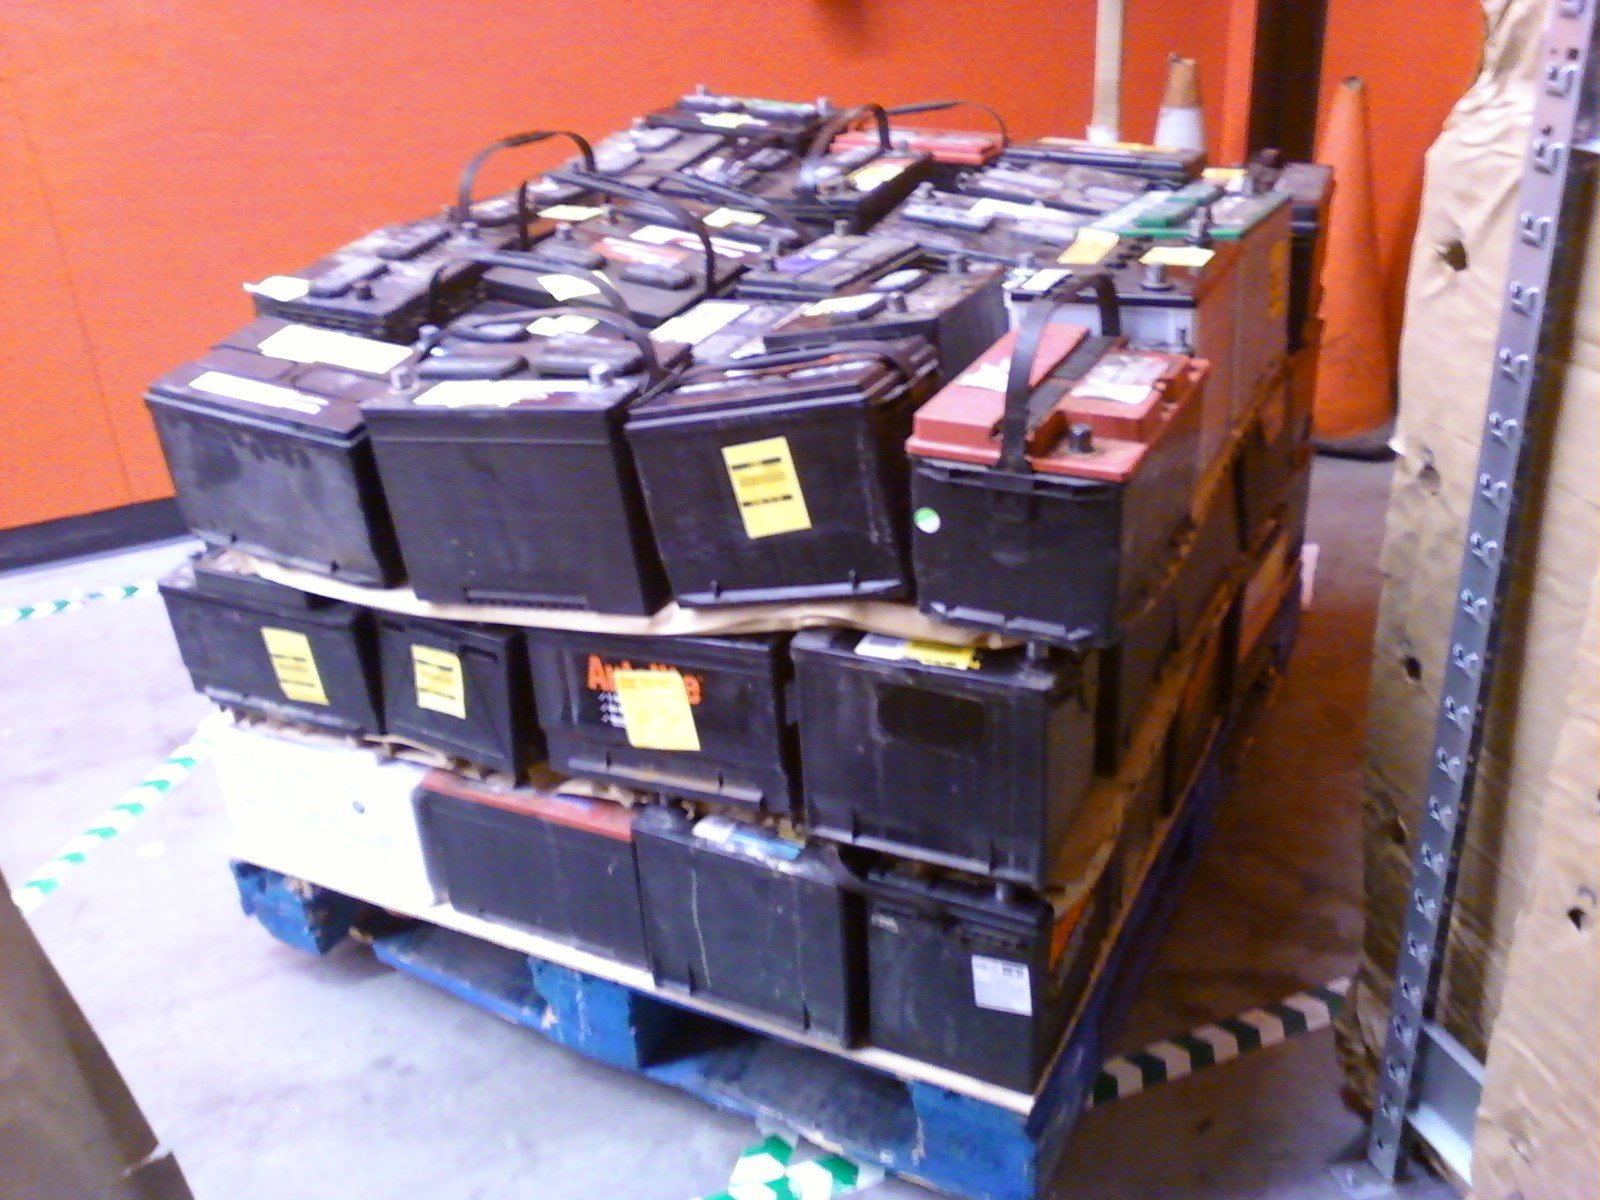 https://0901.nccdn.net/4_2/000/000/04d/add/Pallet_of_scrap_lead-acid_automotive_batteries_-right_side-.jpg